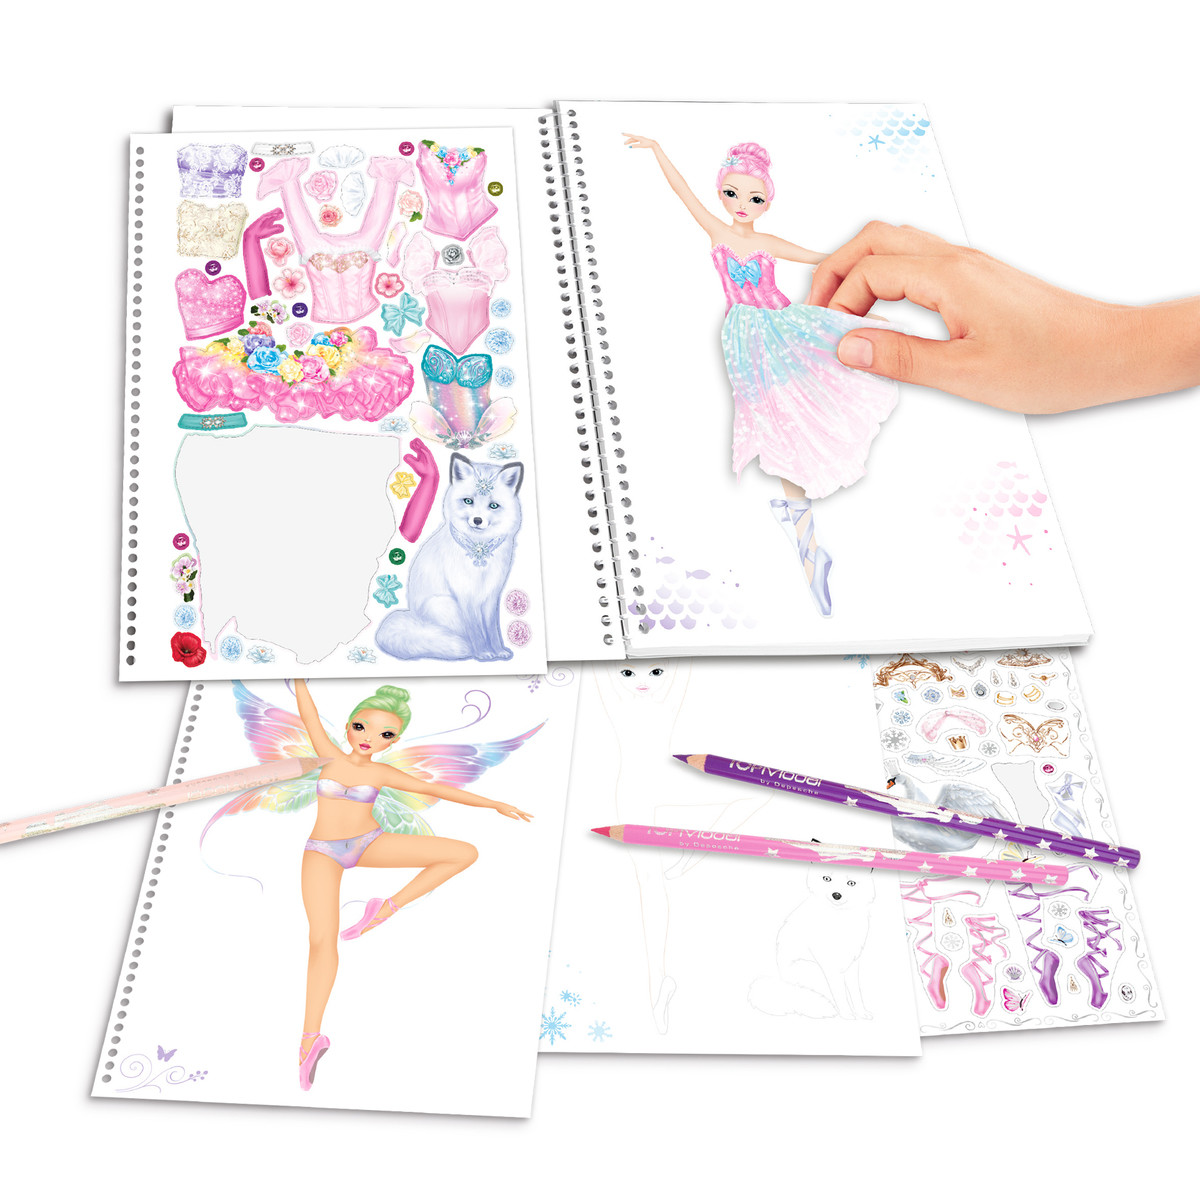 _top_model_fantasy_model_colouring_book_ballet_målarbok_0411051 (1)